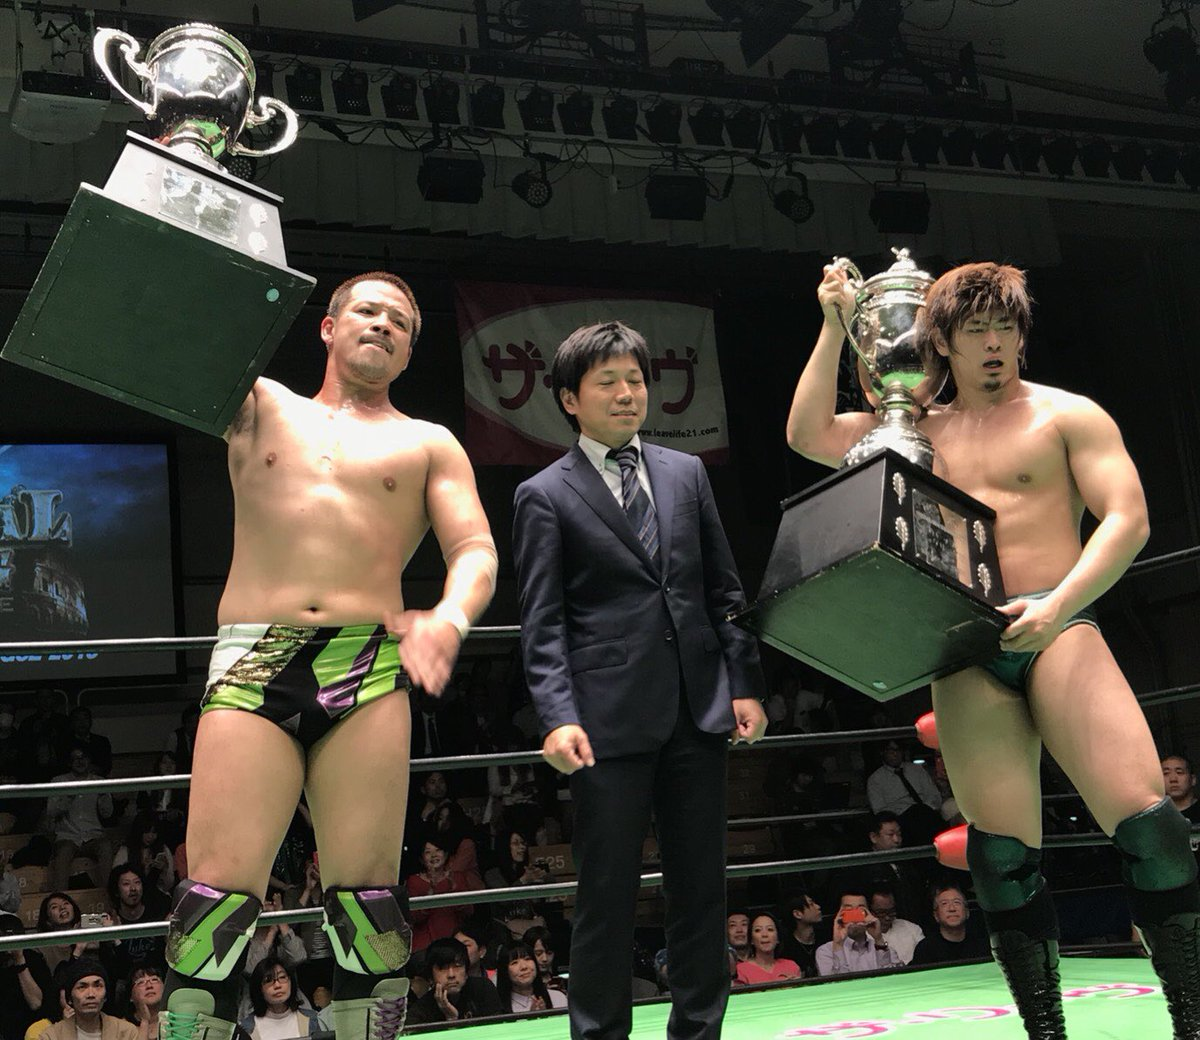 9909f017b3 Shiozaki & Kiyomiya win the GTL 2018. ~ The two will go on to challenge for  the GHC Tag belts against Nakajima & Kitamiya on April 29 in Niigata.